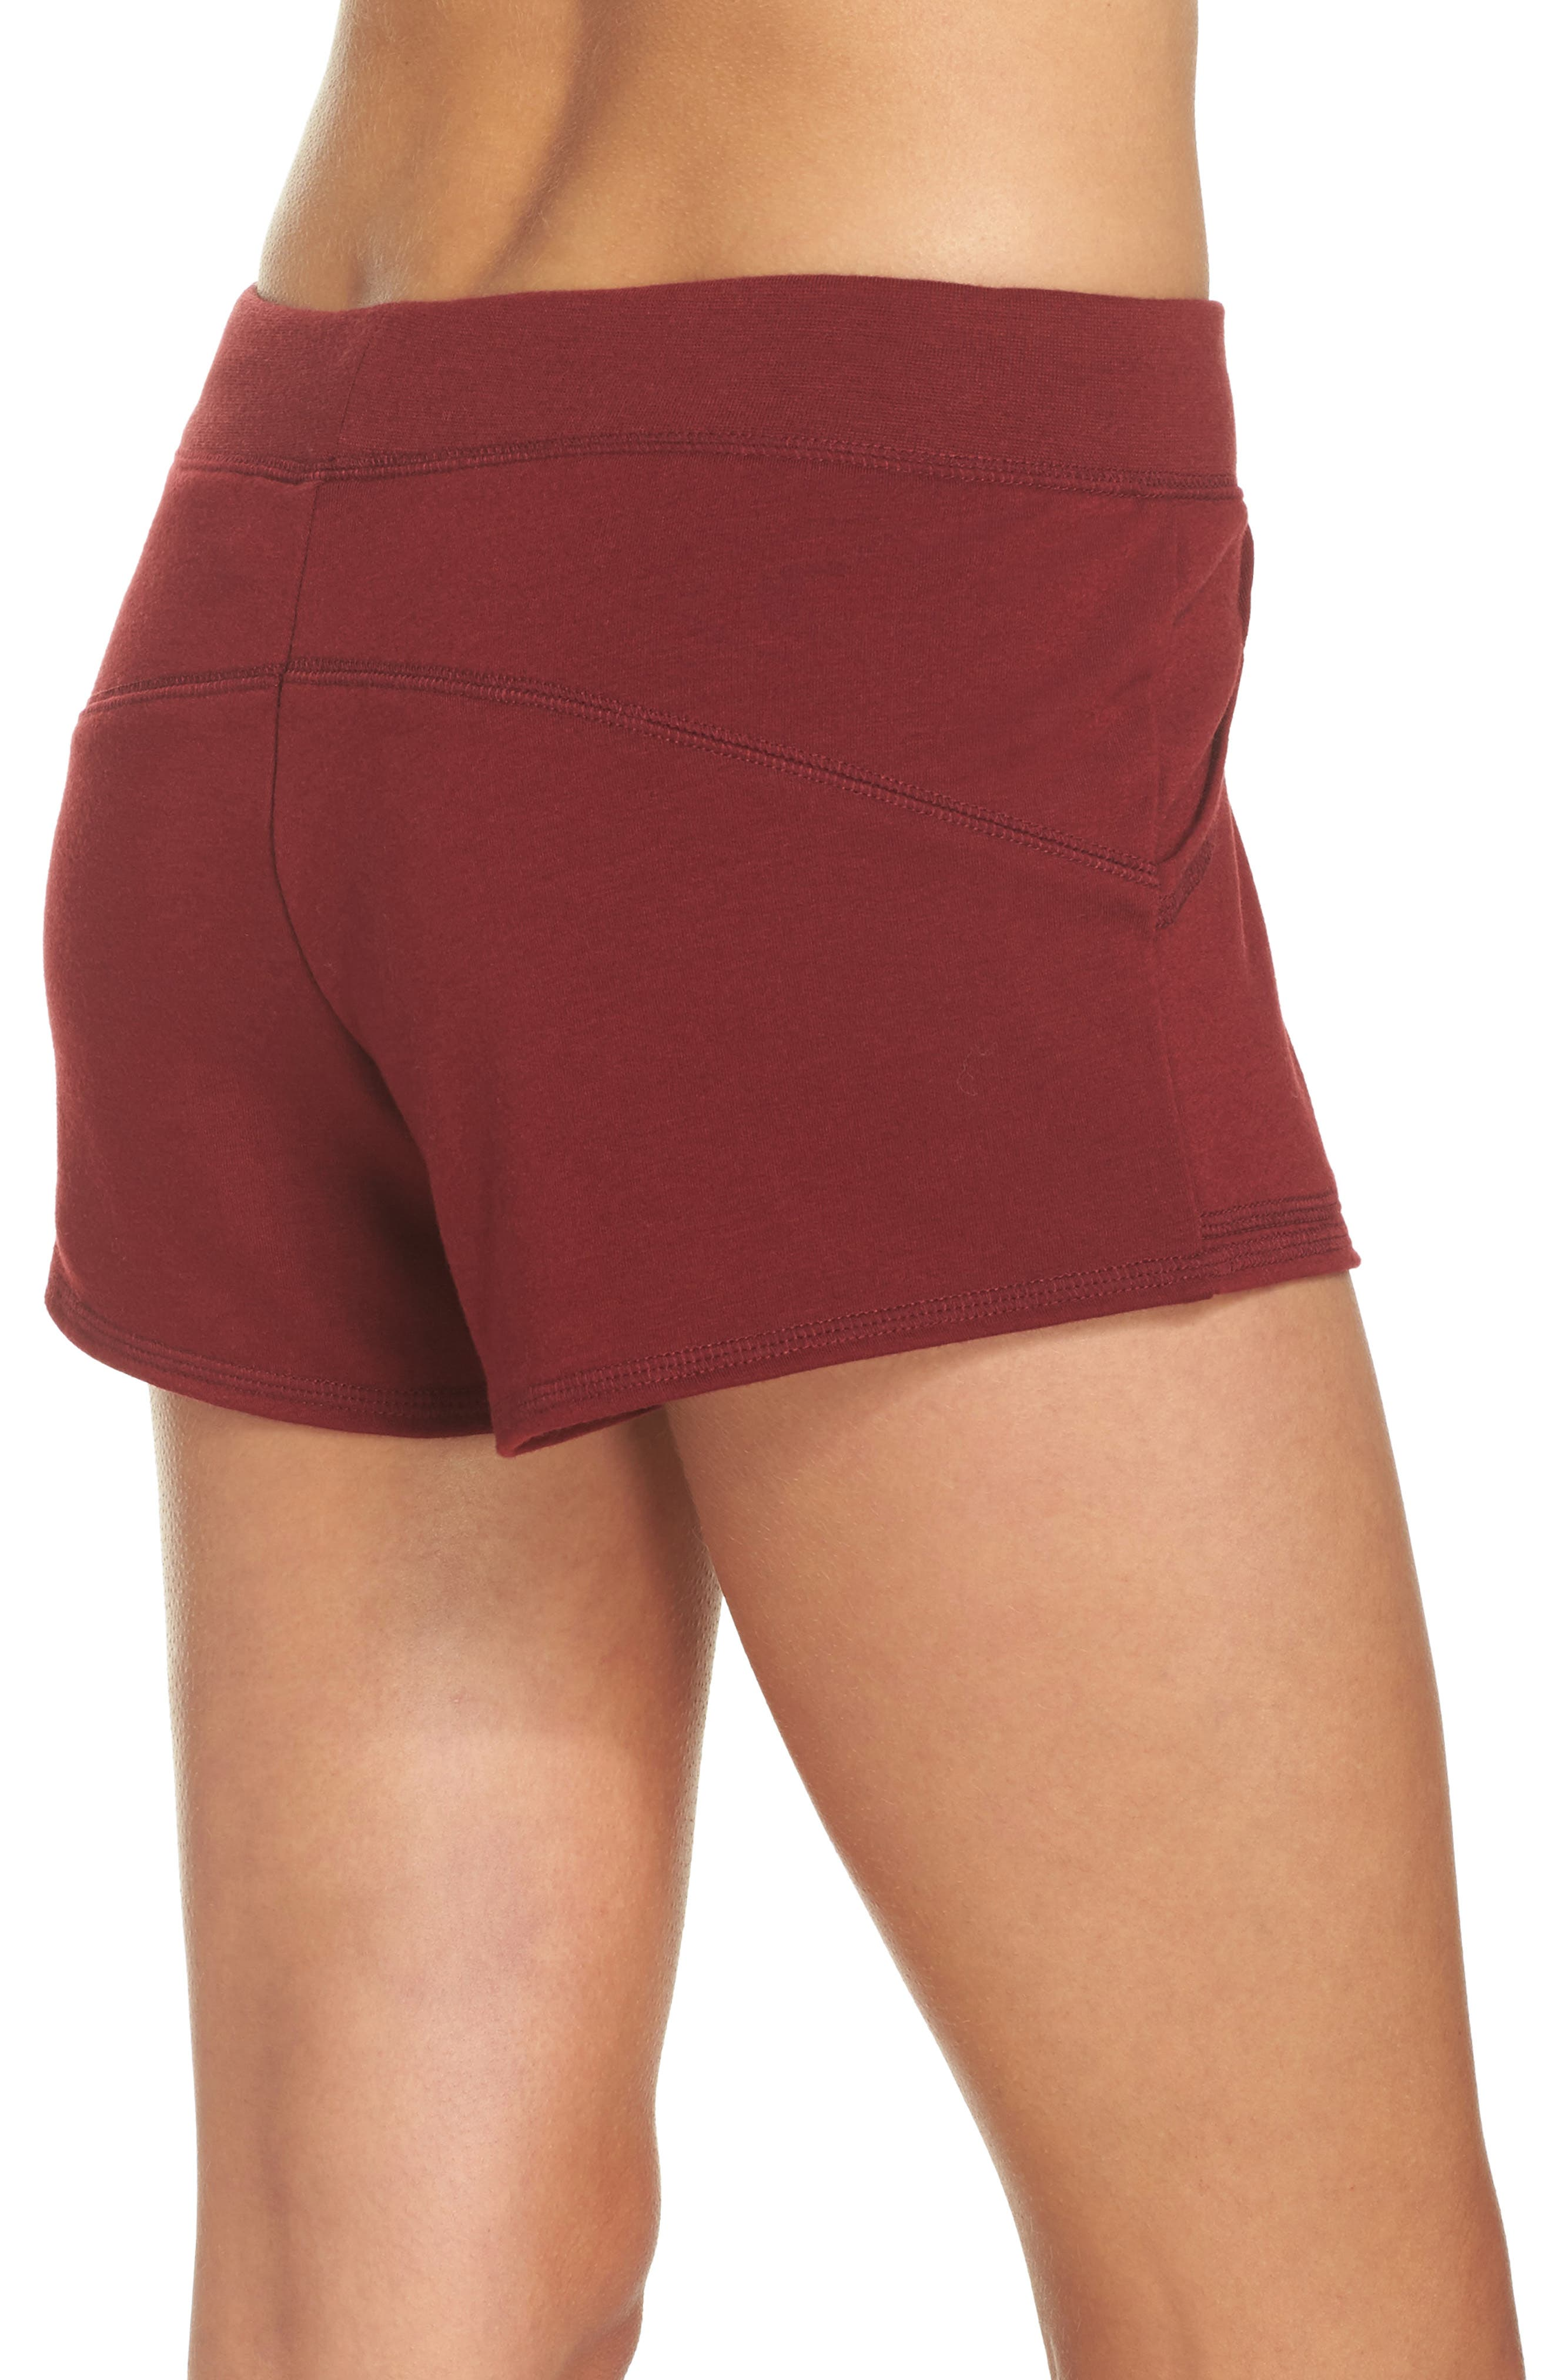 Down To The Details Lounge Shorts,                             Alternate thumbnail 2, color,                             Red Grape